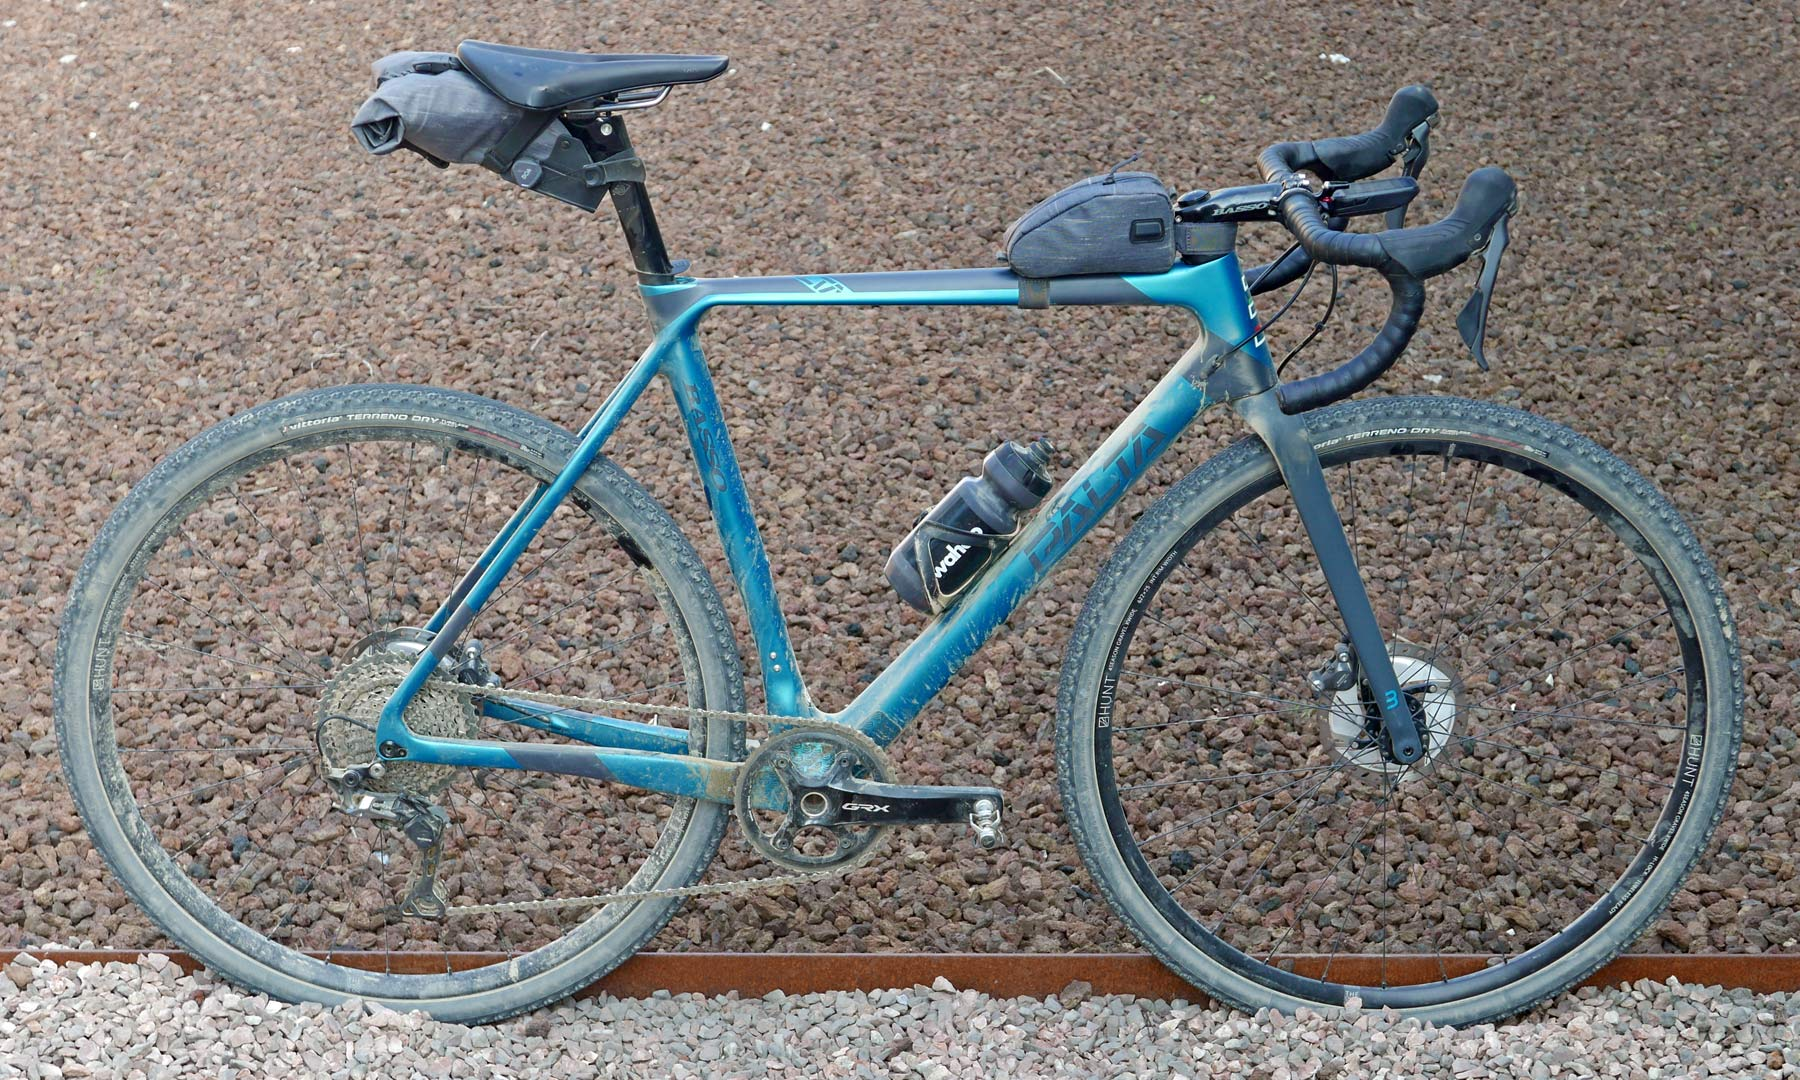 Basso Palta fast carbon gravel road bike - review: road-inspired fast, stiff, made-in-Italy, complete